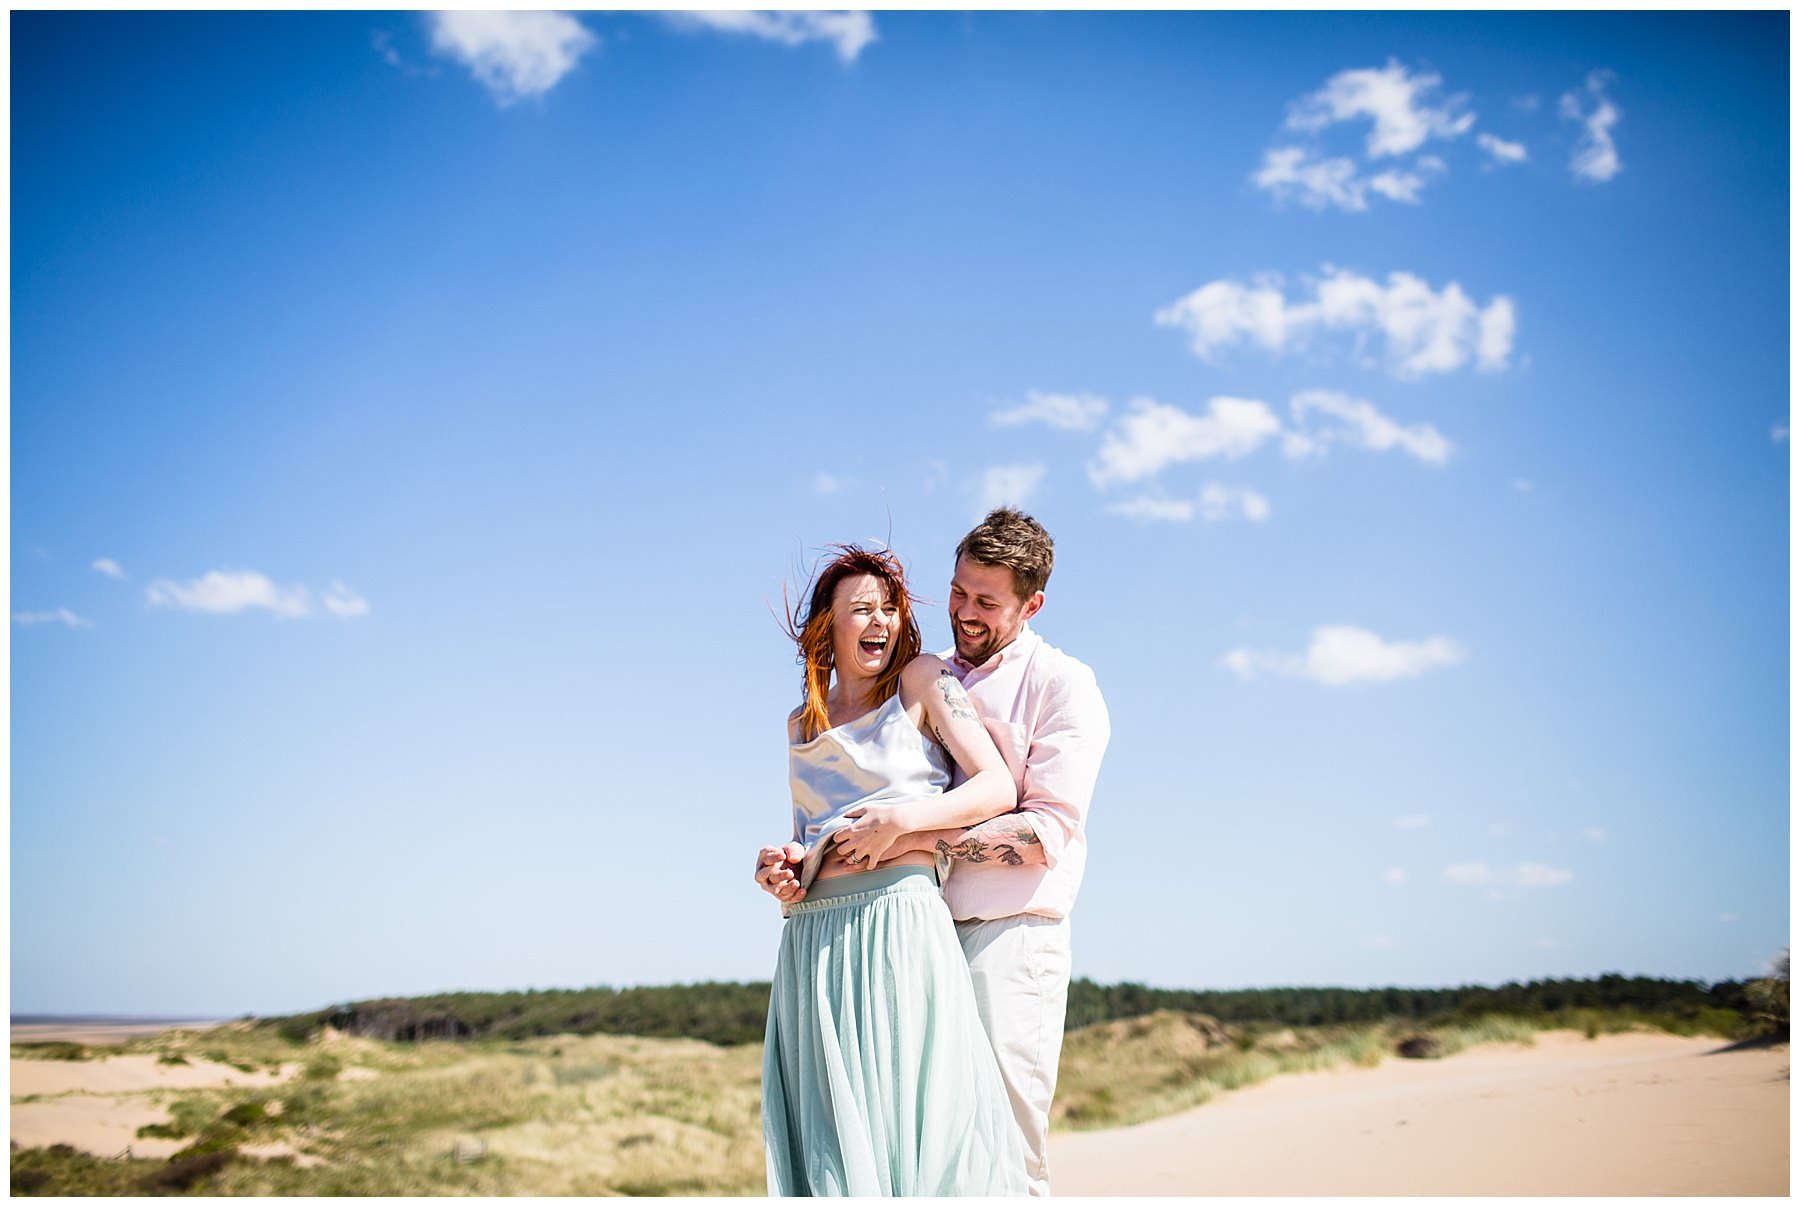 blue sky and couple laughing at beach engagement shoot - charlotte giddings photography